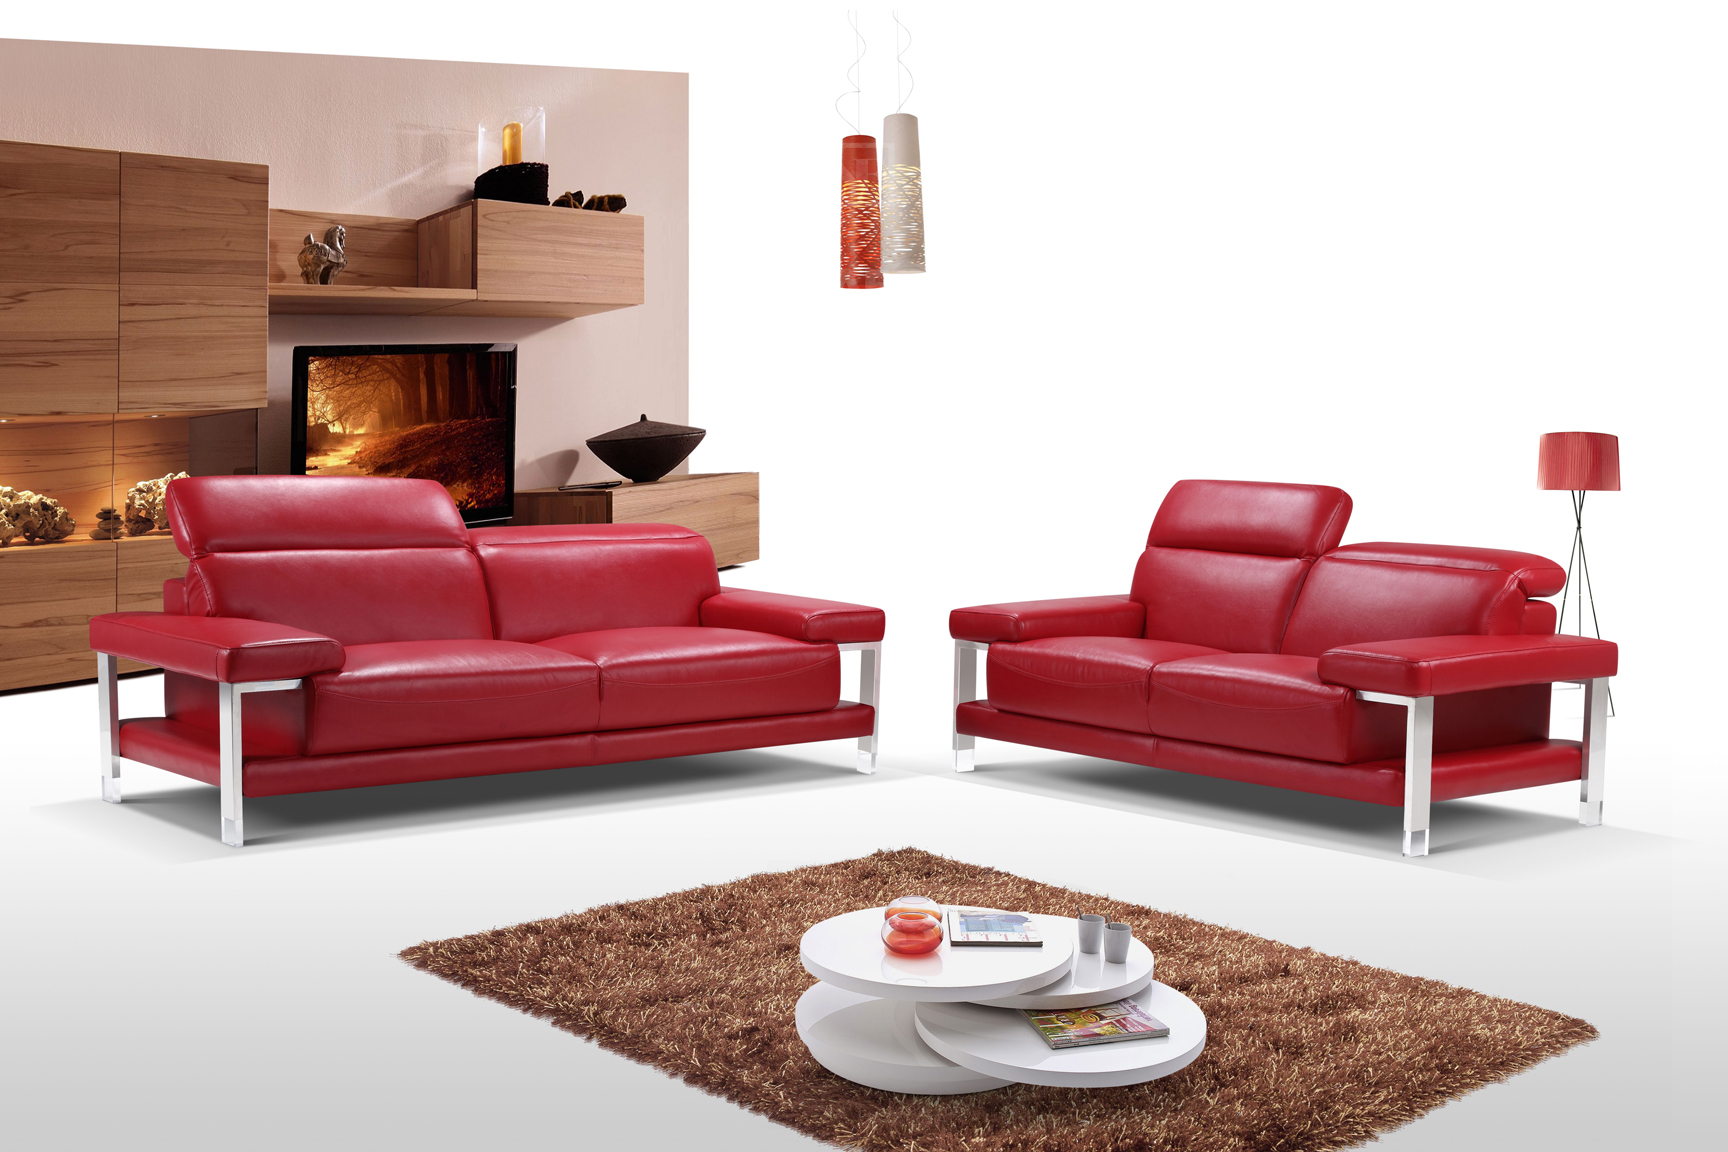 leather living room furniture sets chic fiery two top grain leather living room set 16653 | red two piece chic grain leather living room set e fd2527